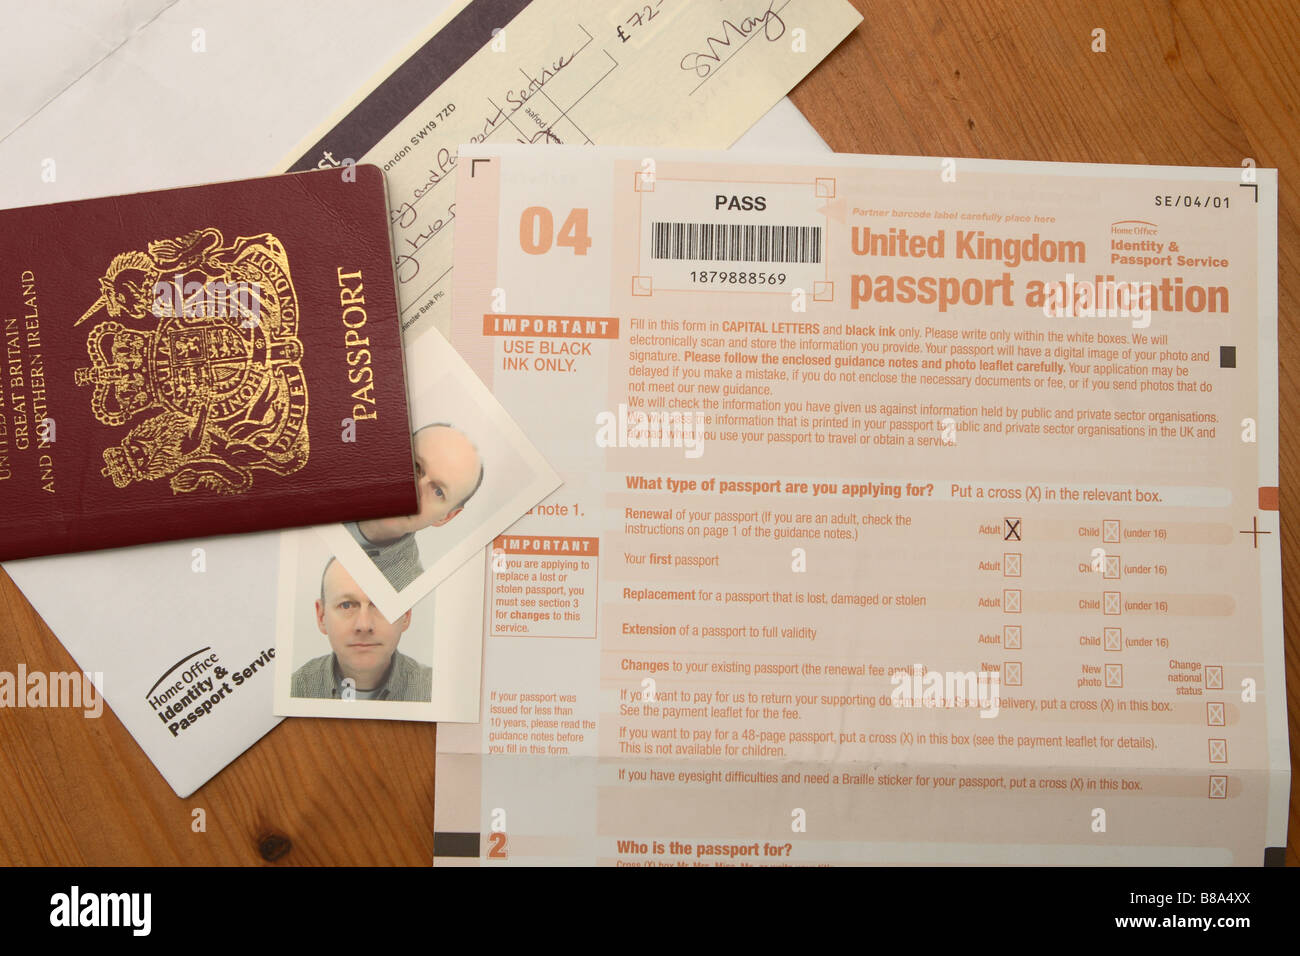 British Passport Application Form To Print, Uk British Passport Application Form And Photograph Photo, British Passport Application Form To Print